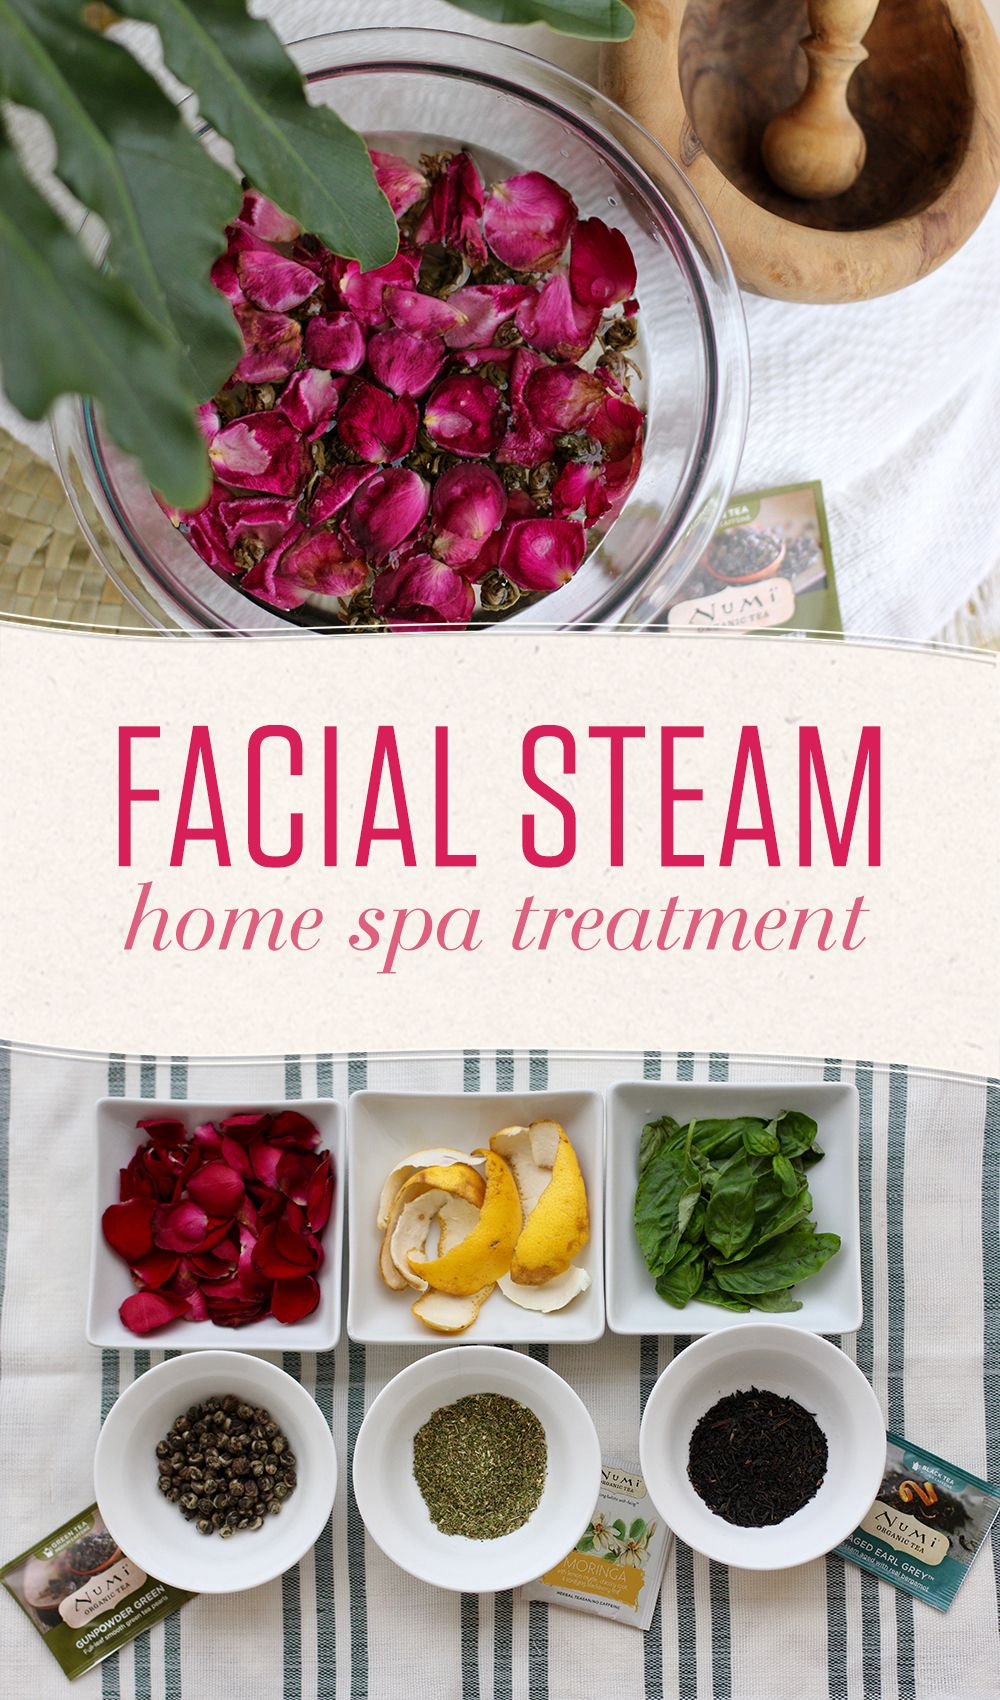 DIY Herbal Facial Steam is part of Herbal facial steam, Facial steaming, Diy spa treatments, Diy spa day, Home spa treatments, Herbalism - An athome facial steam is a simple selfpampering treatment that will have you feeling like you're relaxing at a luxurious spa!